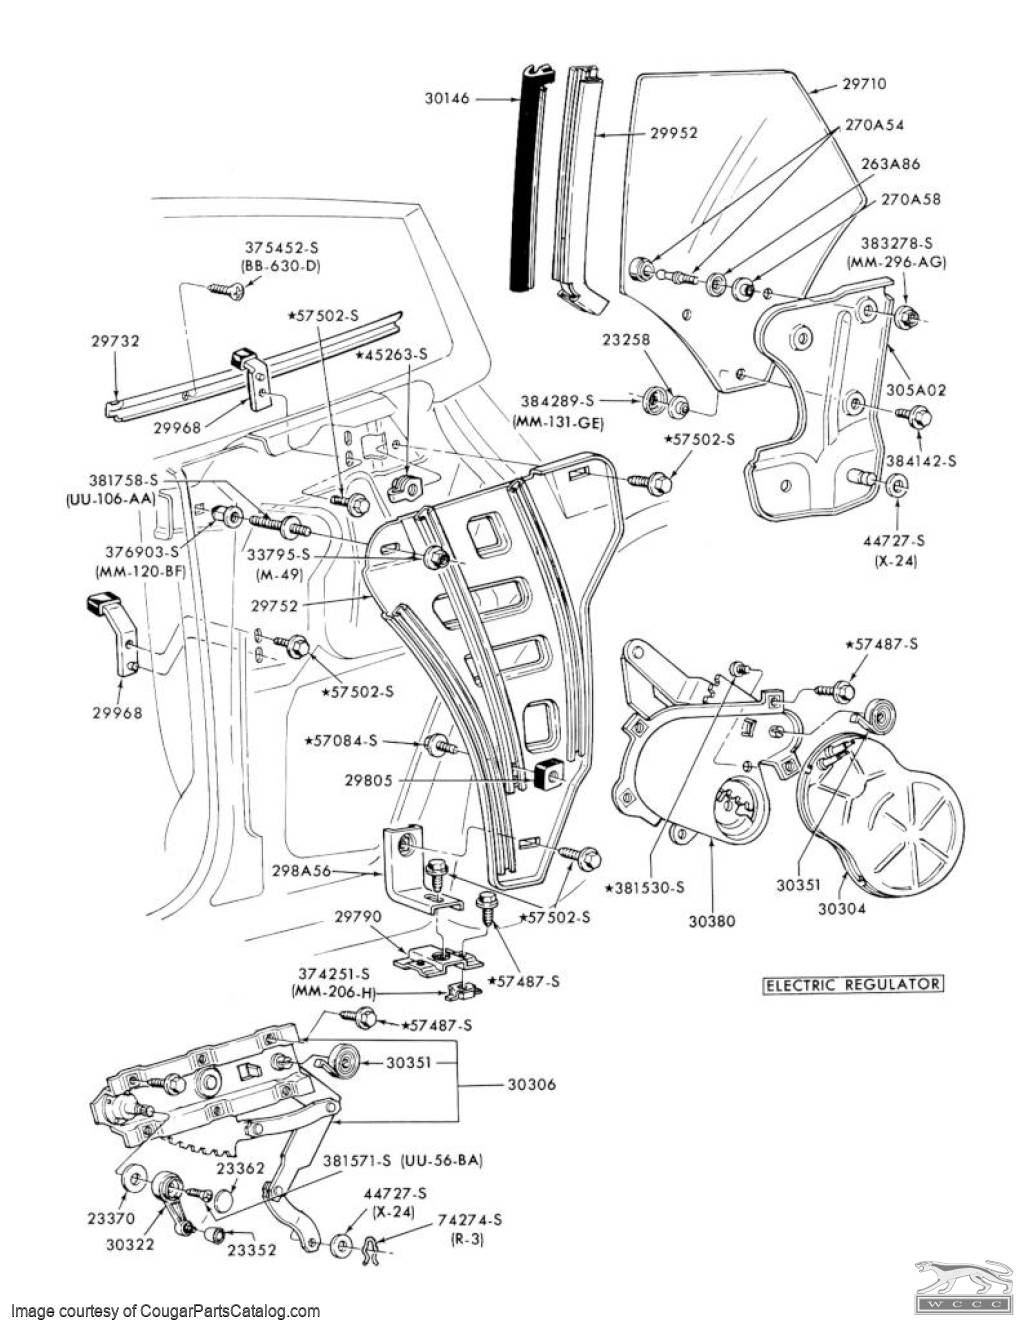 Support Bracket - Lower Quarter Window Guide Bracket - Used ~ 1971 - 1973 Mercury Cougar / 1971 - 1973 Ford Mustang - 11-0398